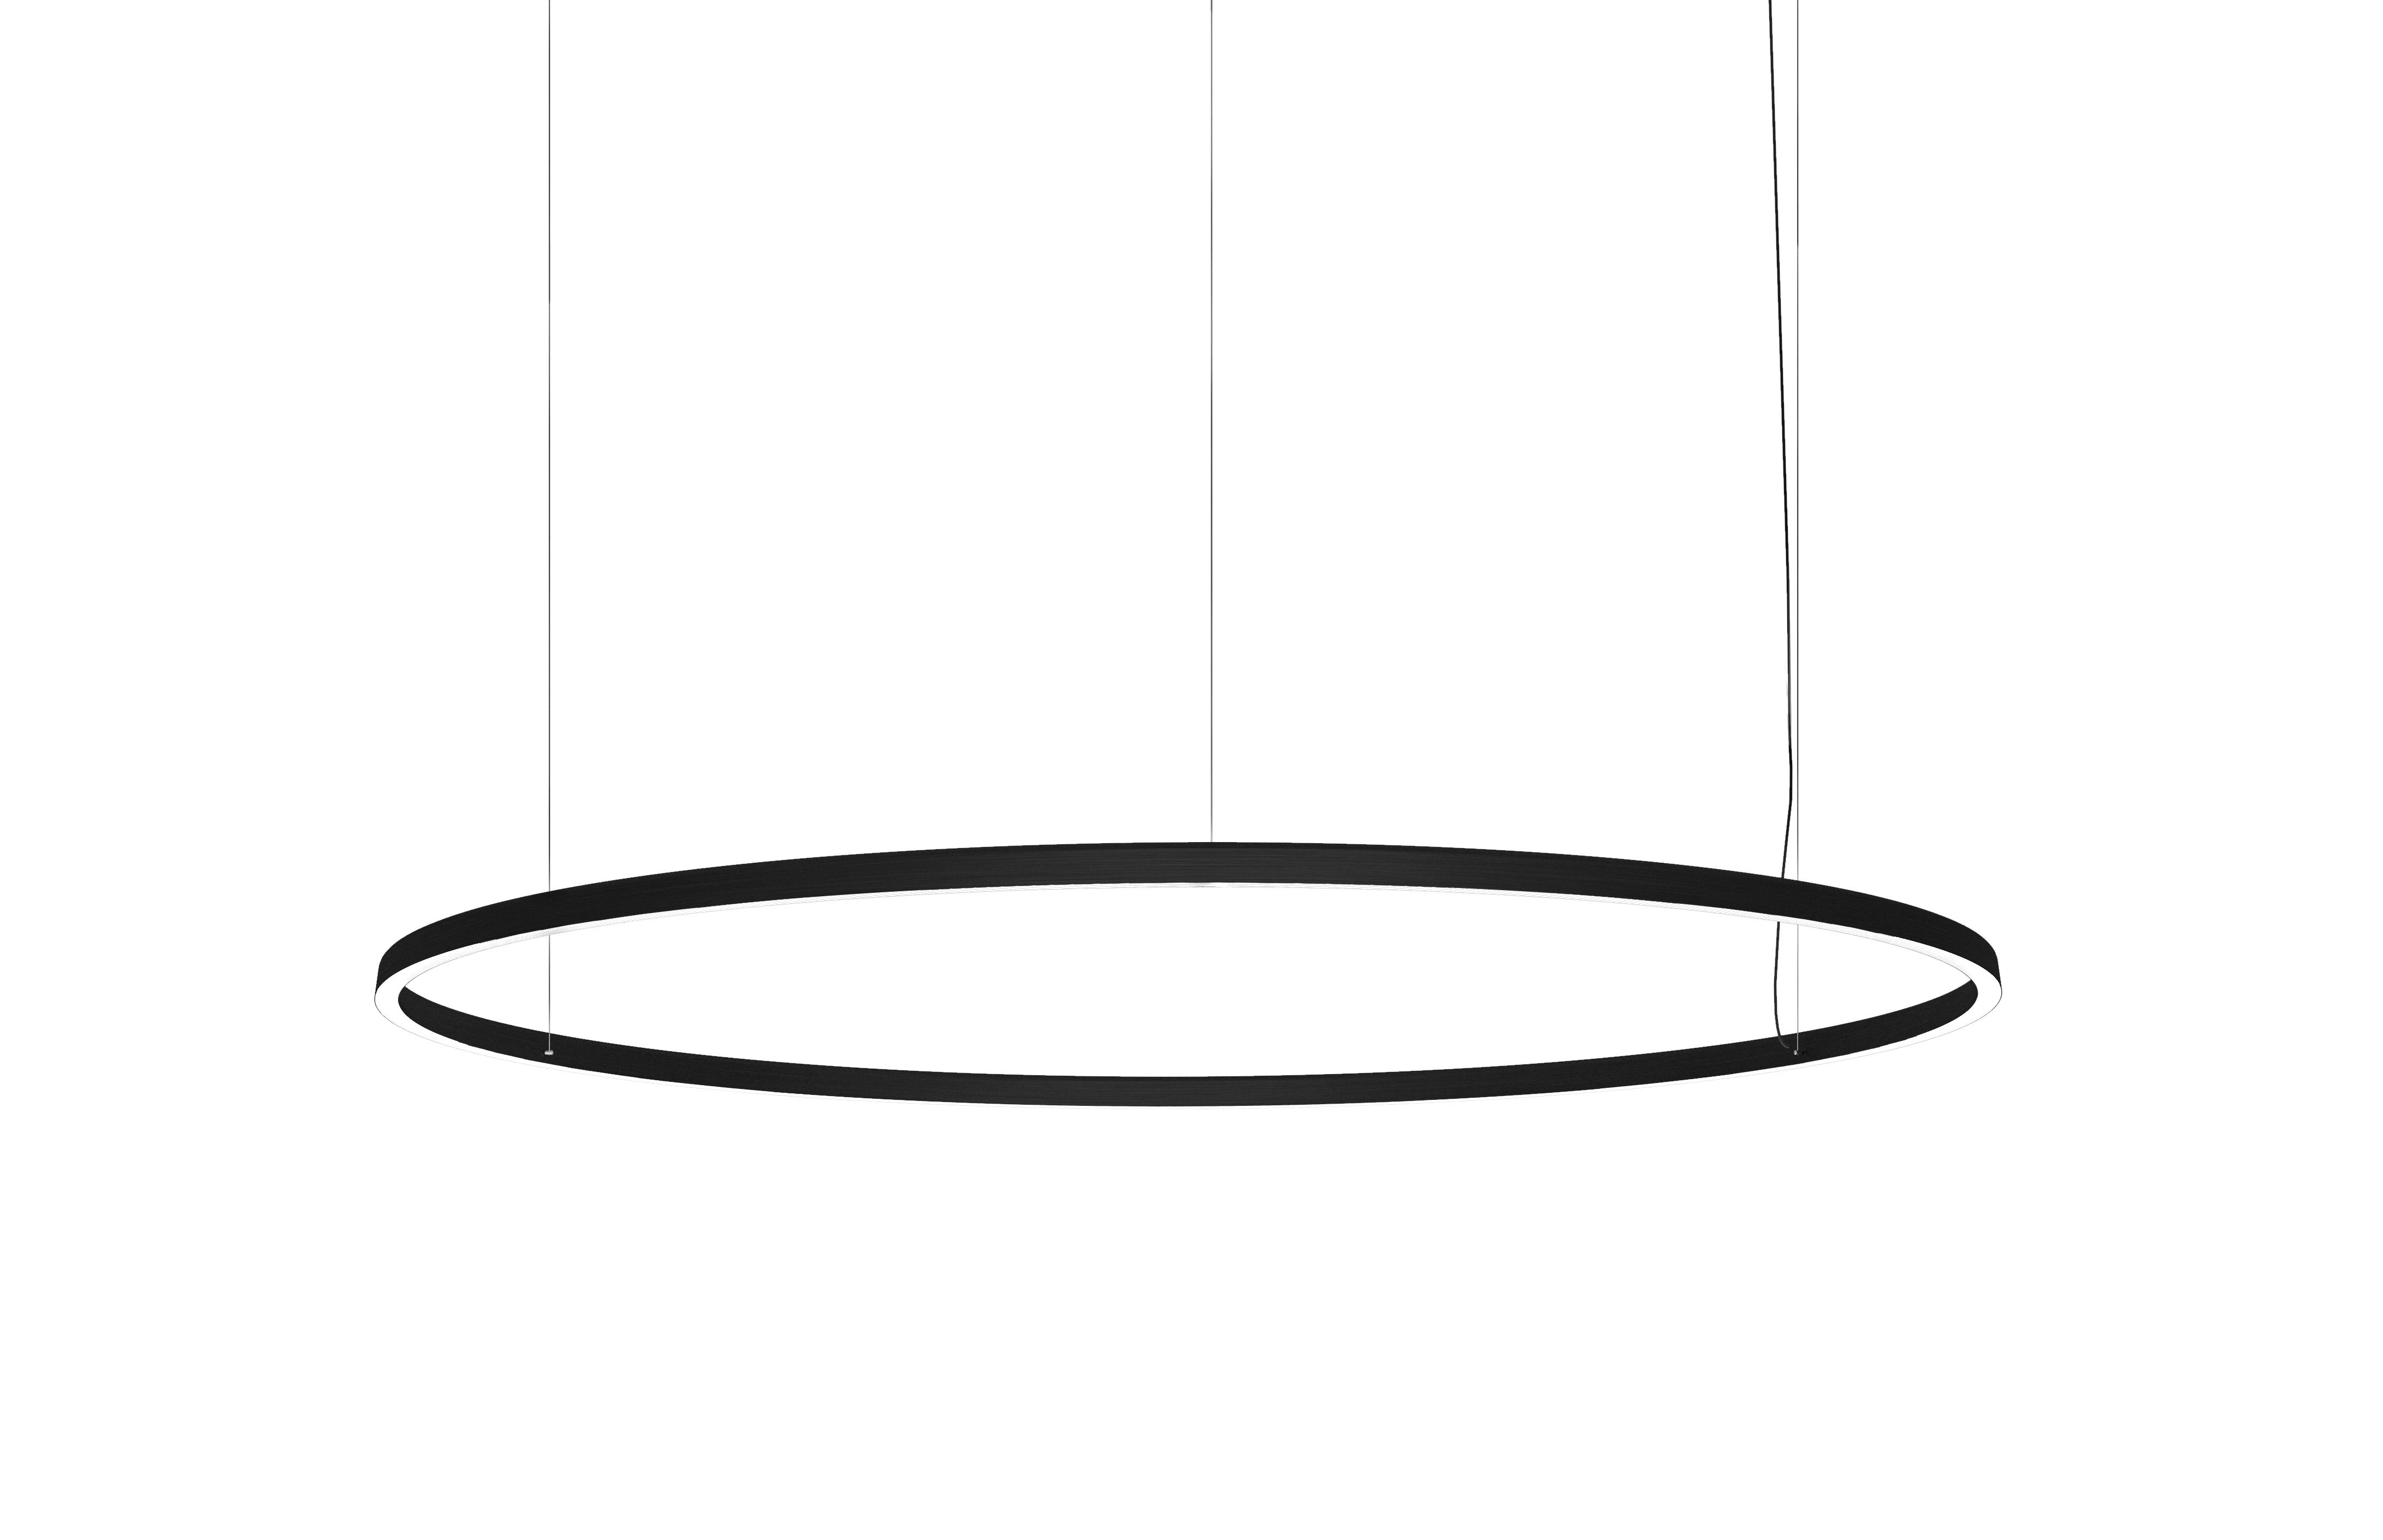 Luminaire - Suspensions - Suspension Compendium Circle / LED - Ø 72 cm - Luceplan - Noir - Aluminium